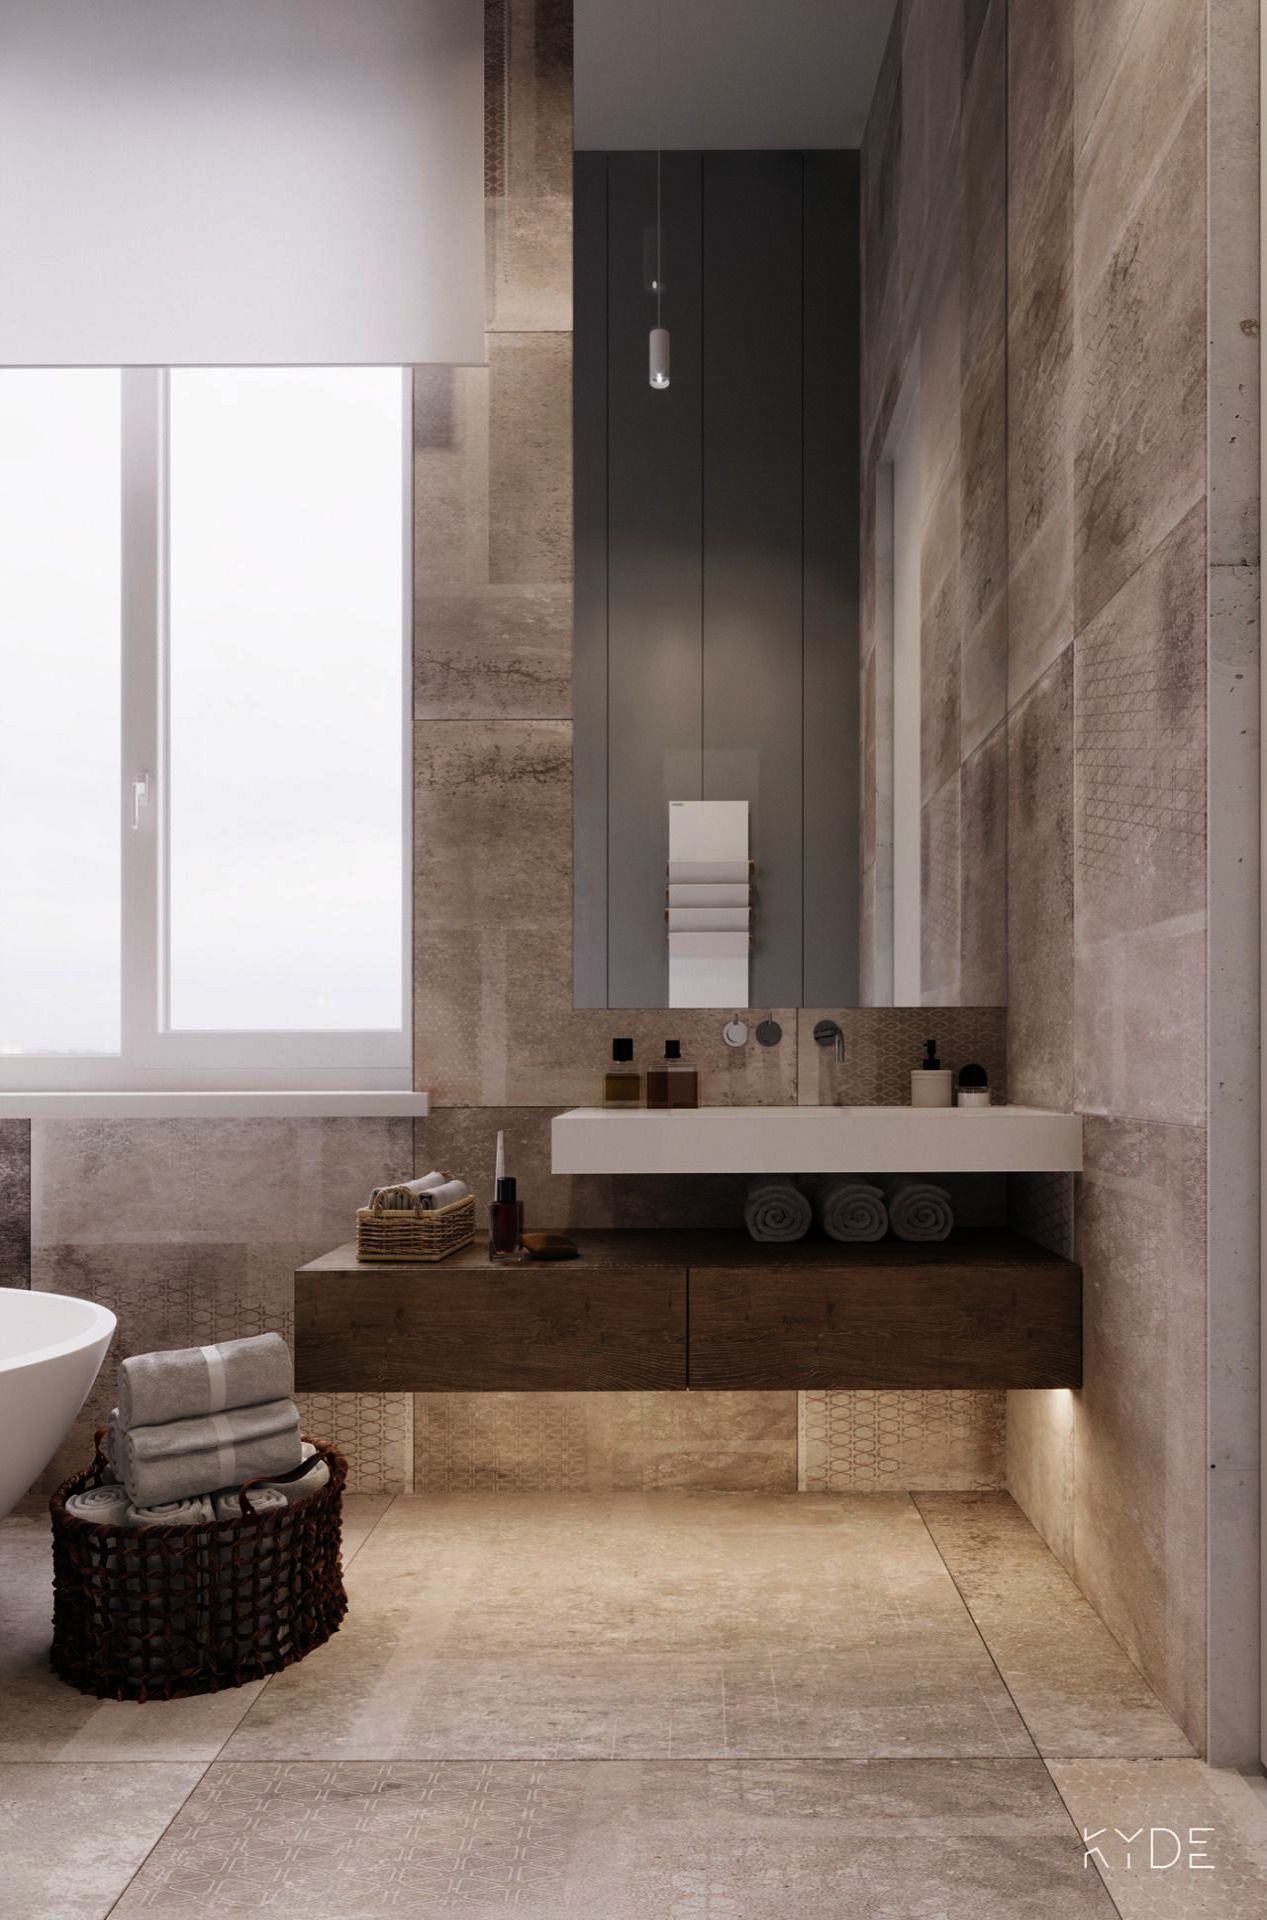 Elegant Bathroom Themes Luxury Bathrooms Small Spaces Modern Luxury Bathroom Bathroom Design Luxury Top Bathroom Design